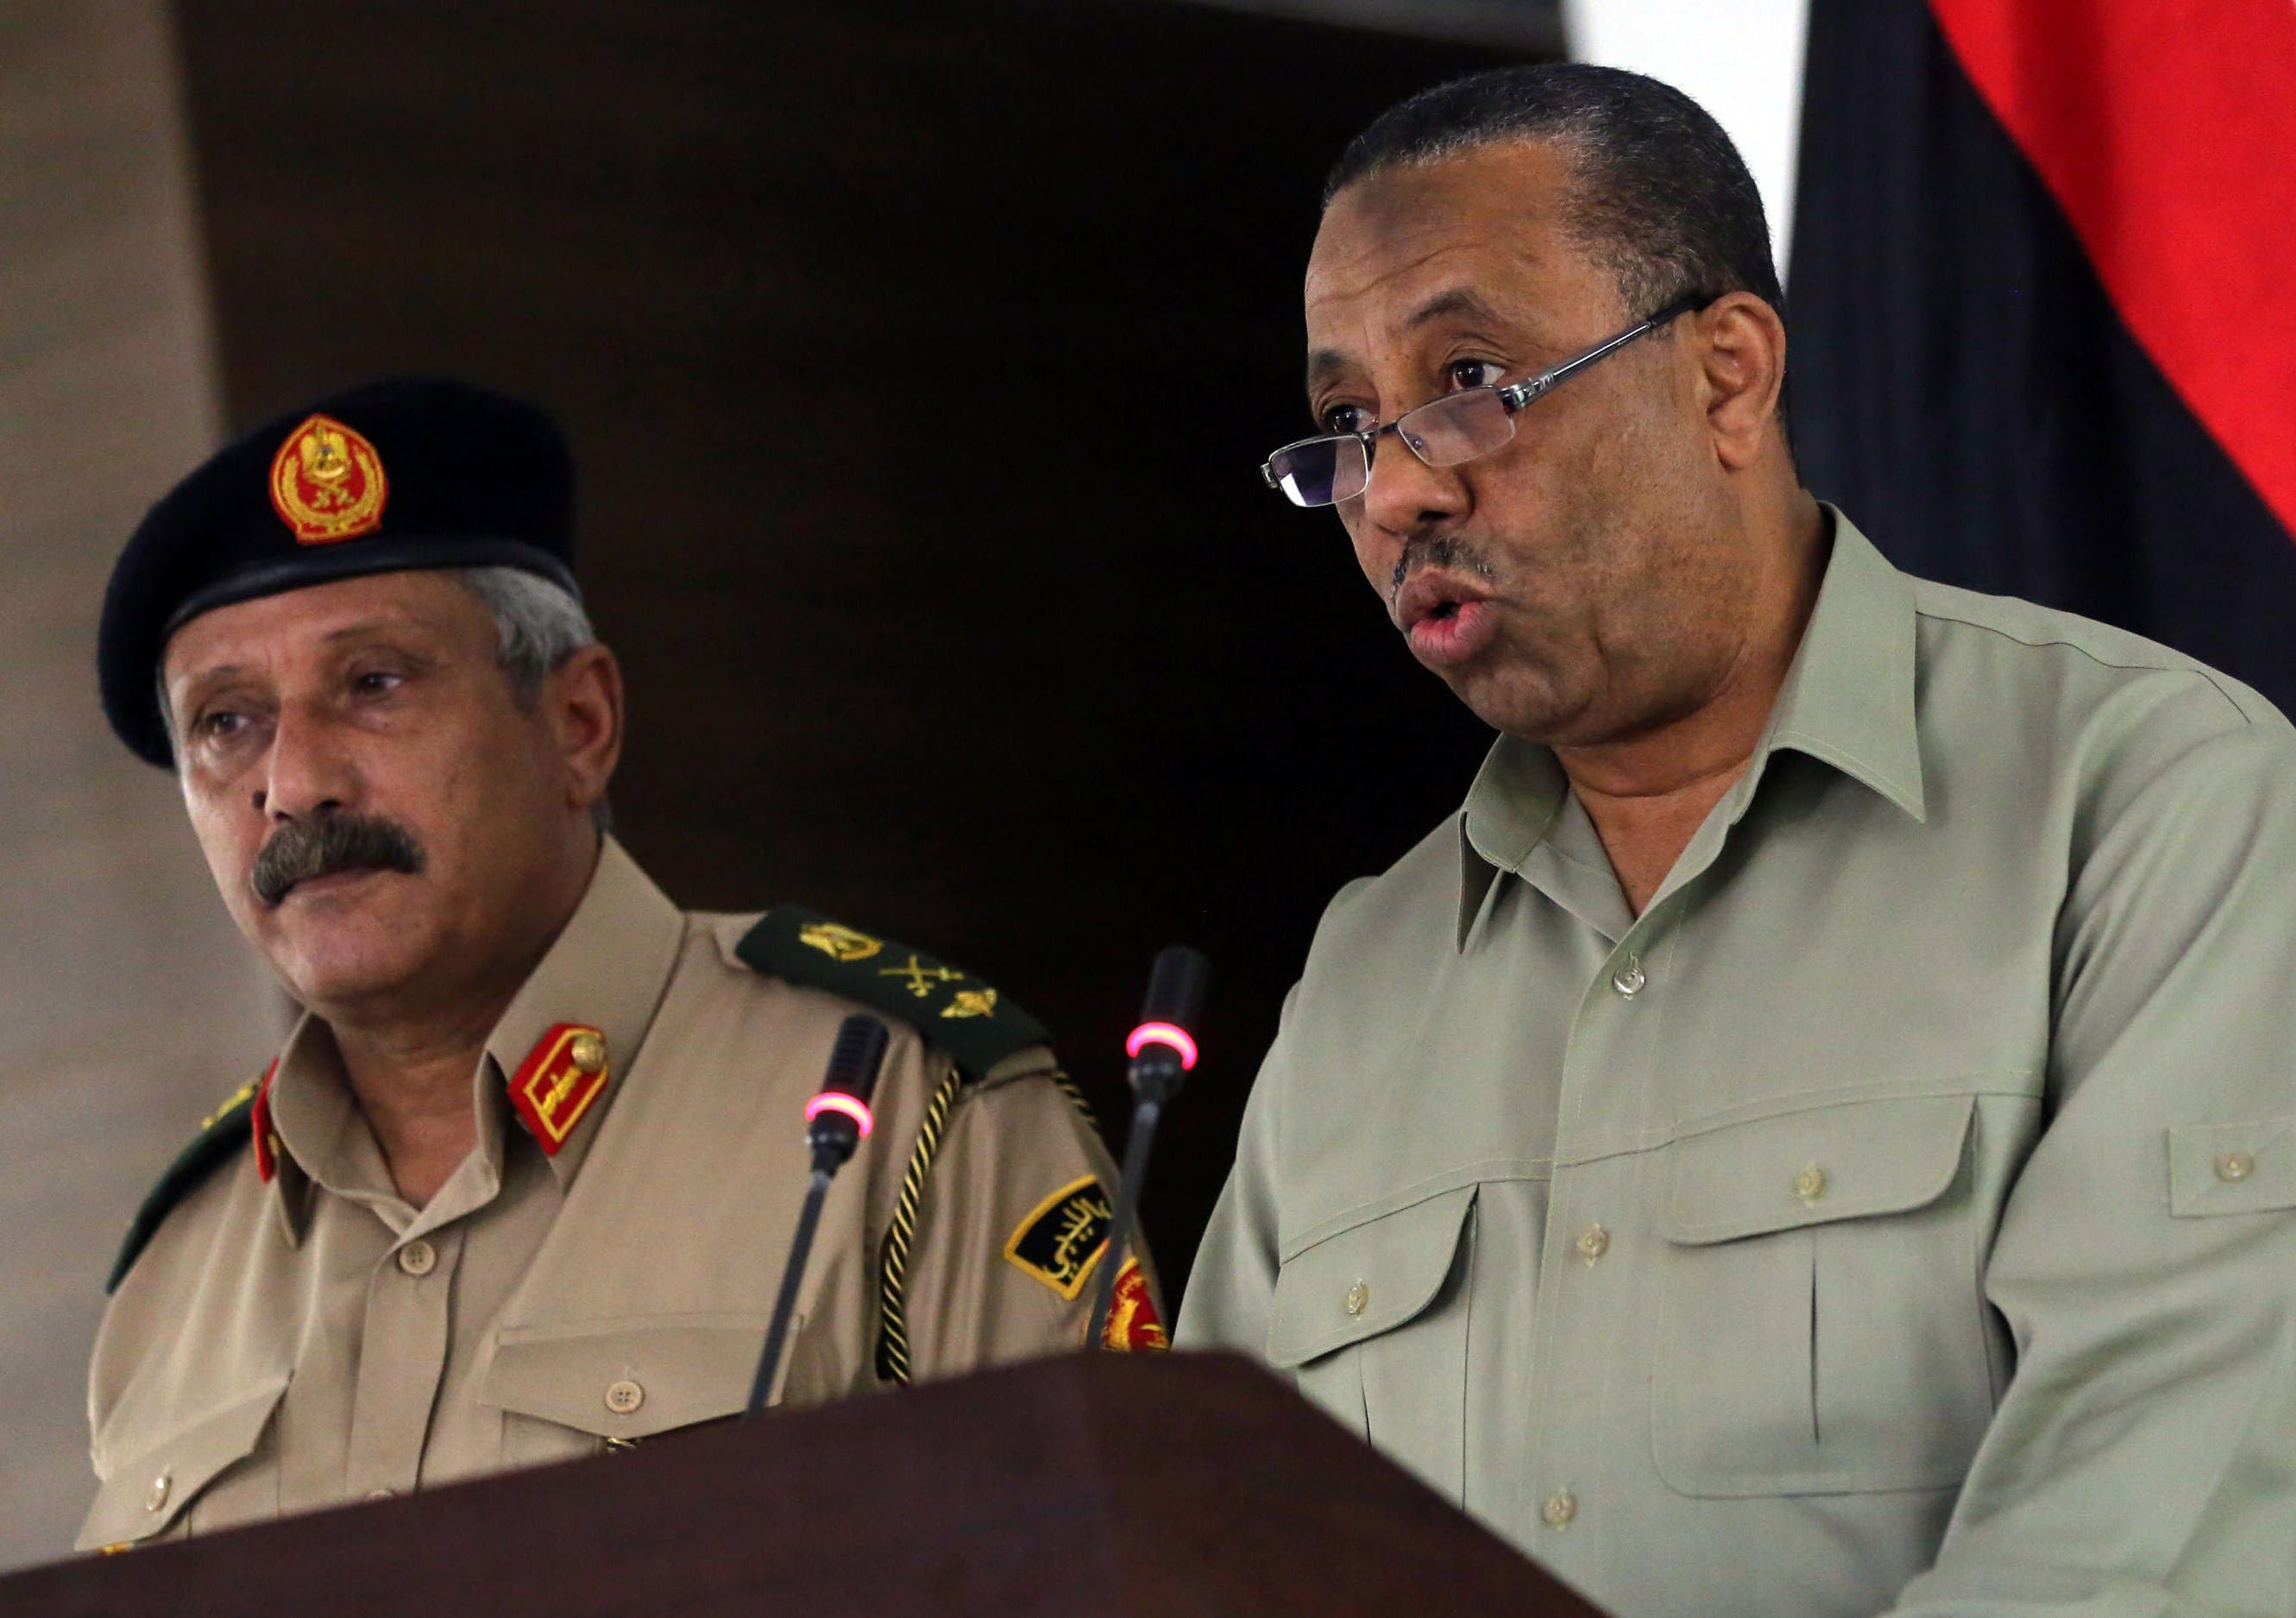 Chief of Staff of the Libyan Armed Forces, Major-General Abdessalem Jadallah al-Salihin (L) and Interim Prime Ministe rAbdullah al-Thani speaks during a press conference in Tripoli. (AFP)